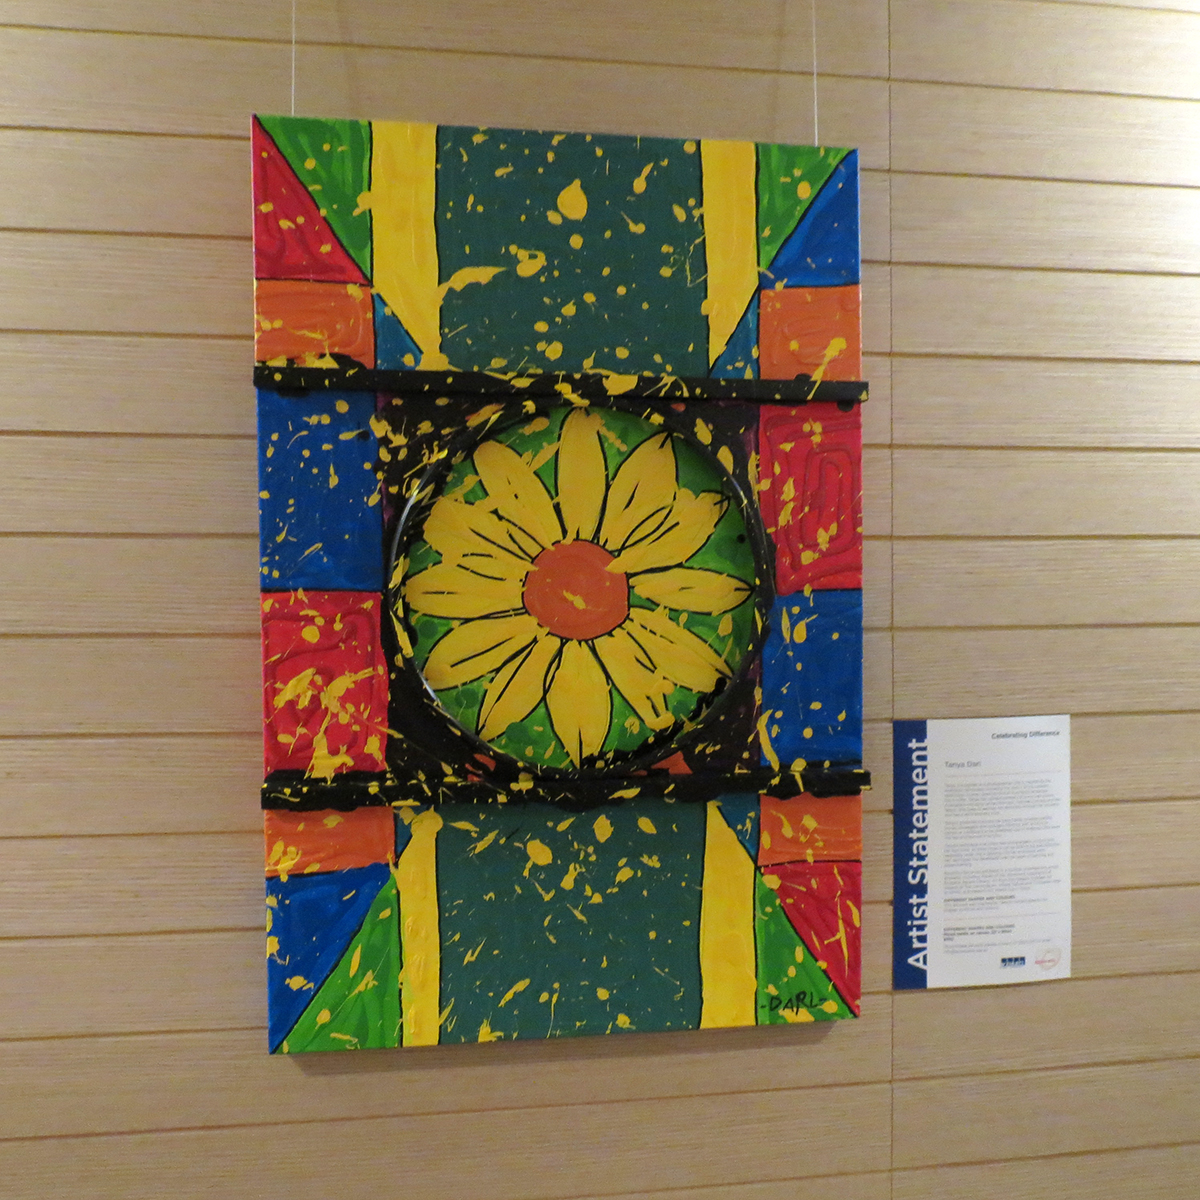 Canvas hung on a wall with a sunflower painted in the centre and bright blocks of colour around it